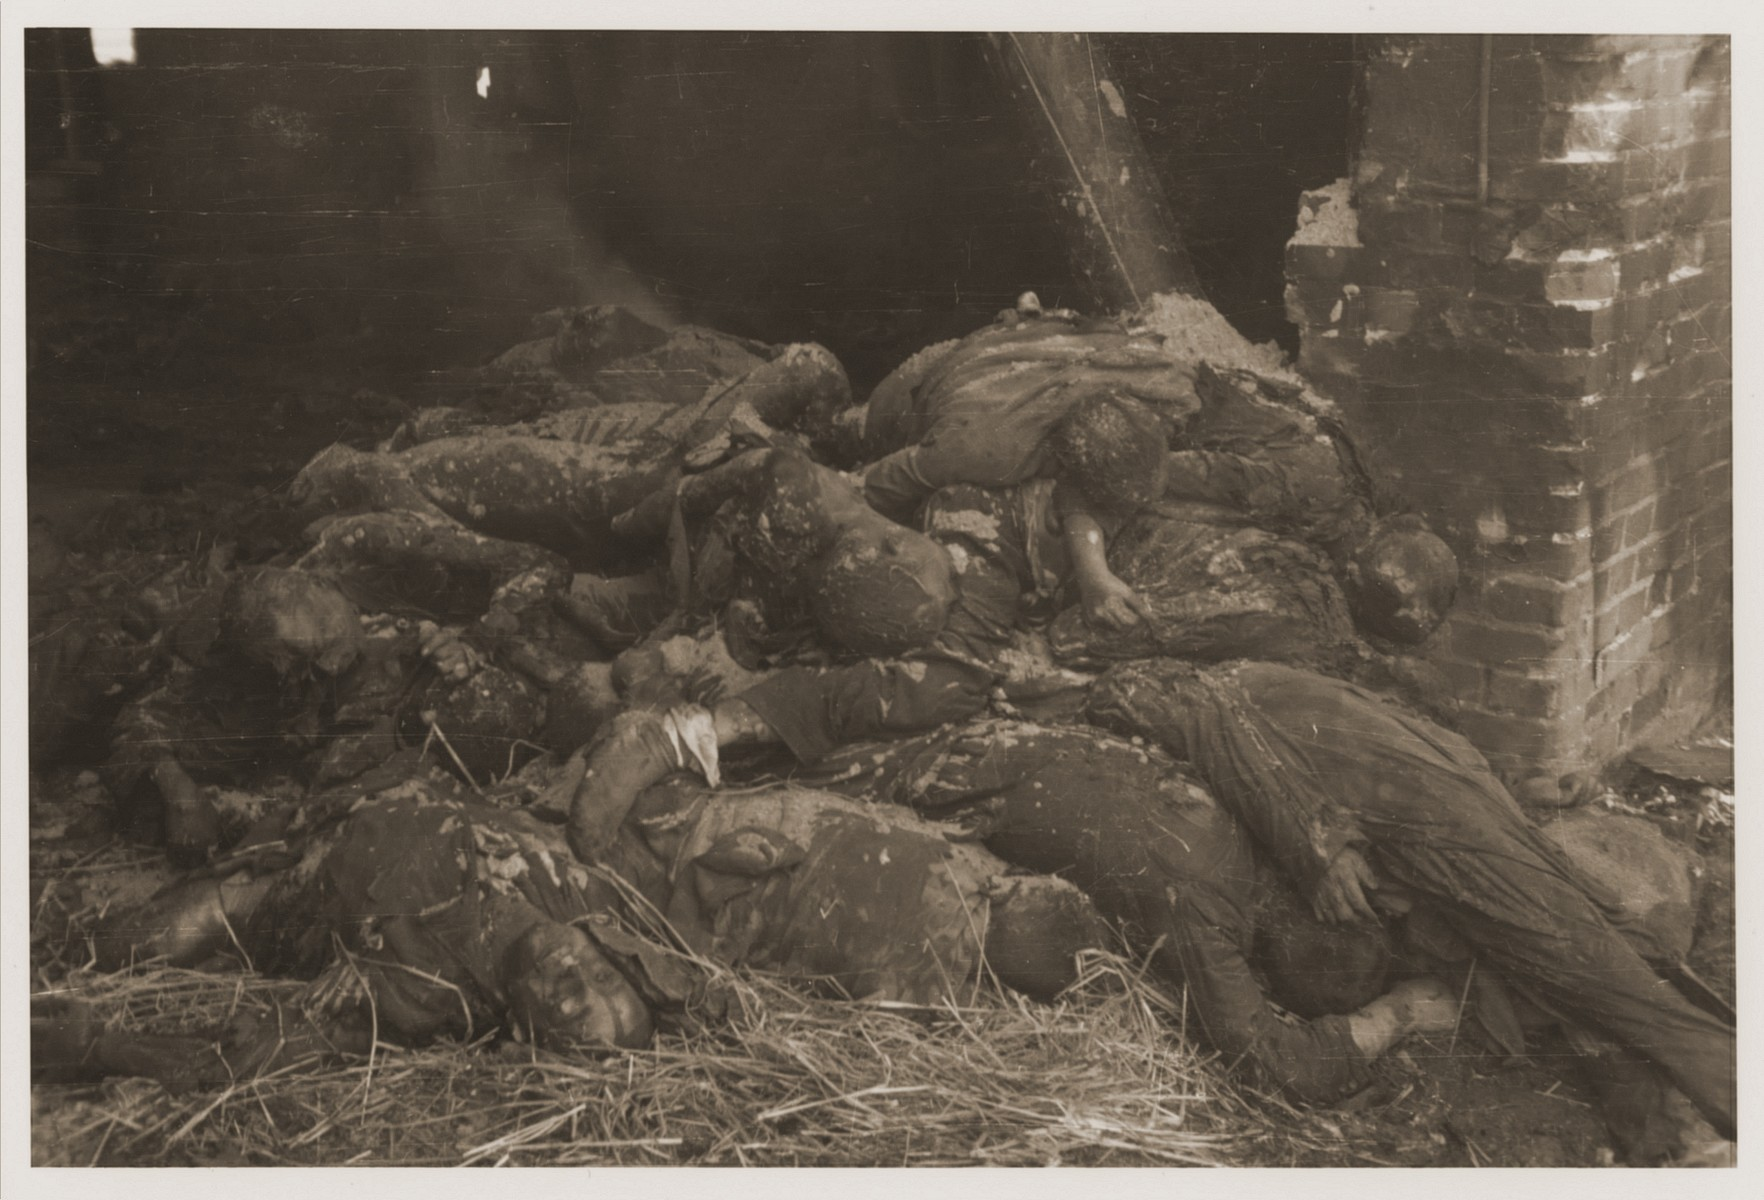 The charred corpses of prisoners burned alive by the SS in a barn outside Gardelegen lie piled just inside a doorway.